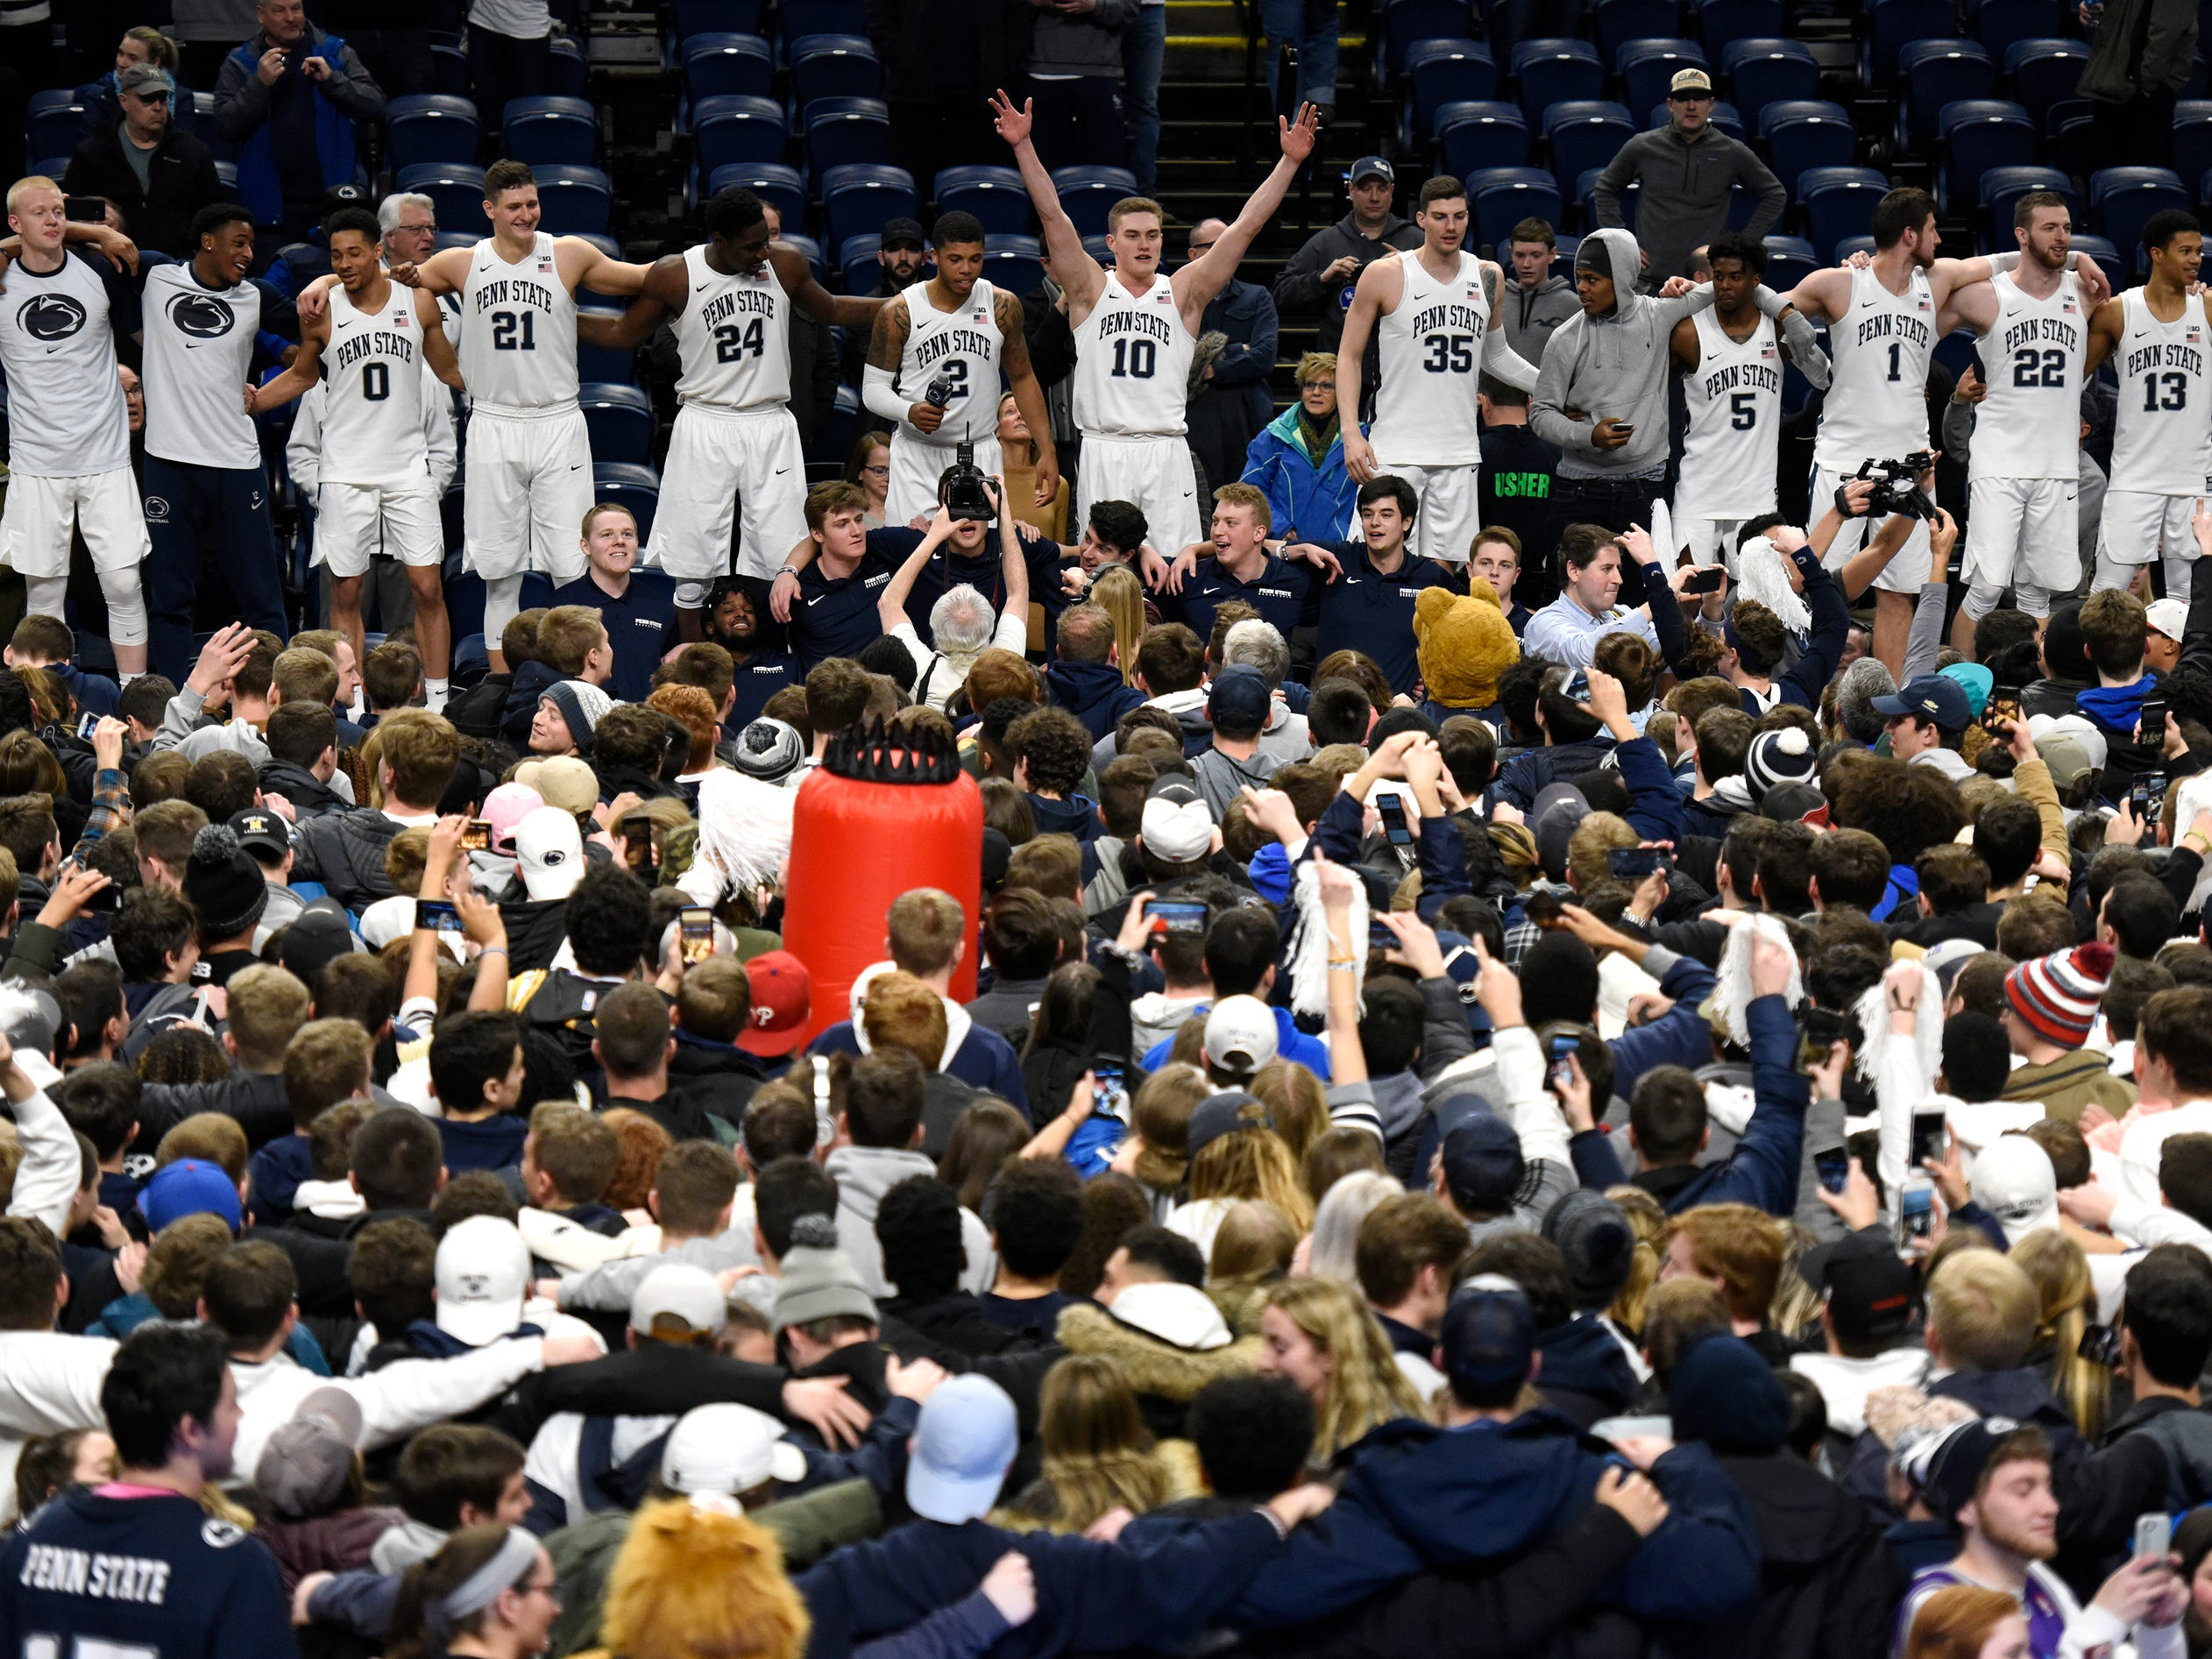 Penn State players celebrate their 75-69 upset win over Michigan, Tuesday, Feb. 12, 2019, in State College, Pa.